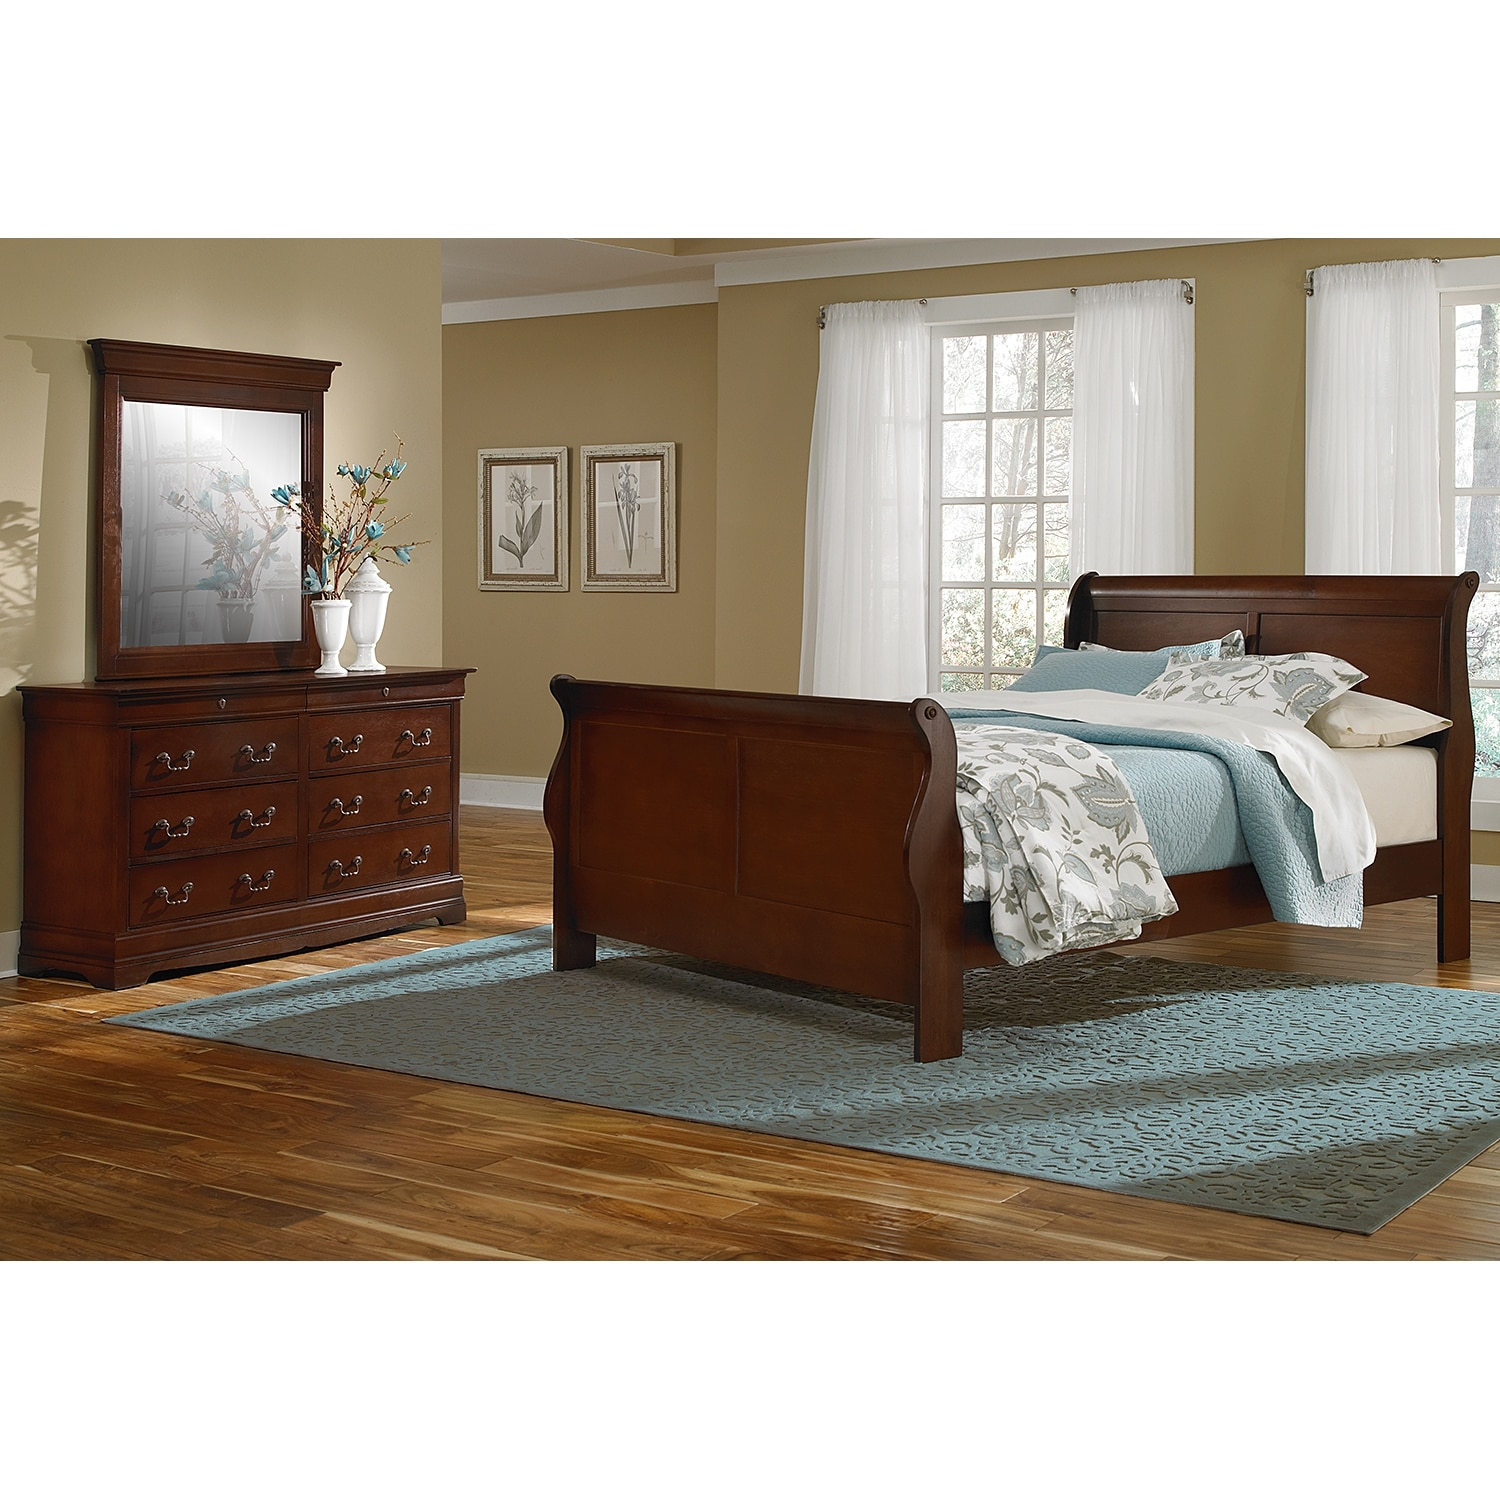 Neo classic youth 5 piece twin bedroom set cherry for Youth furniture